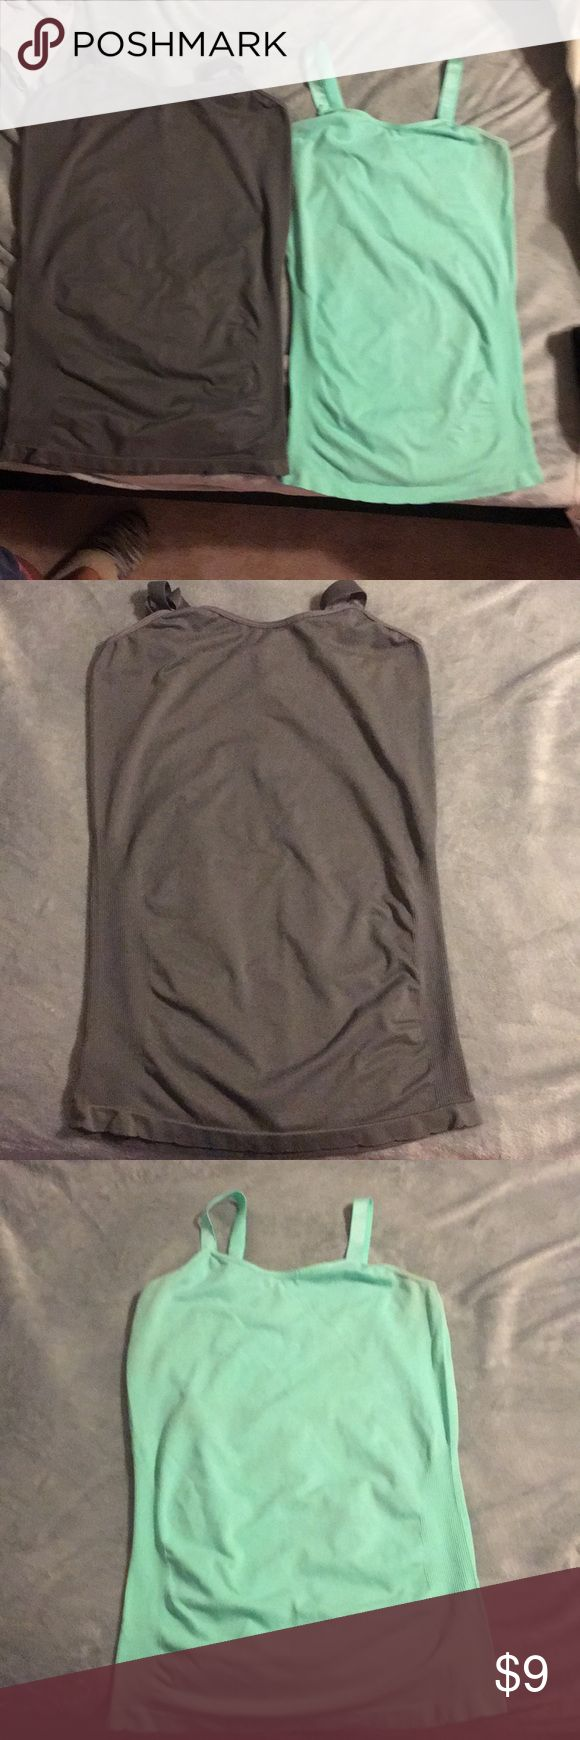 Maternity camis Breathable polyester maternity tanks. Mint & dark grey. Tags are worn down but they're a size large :) fantastic condition Tops Tank Tops